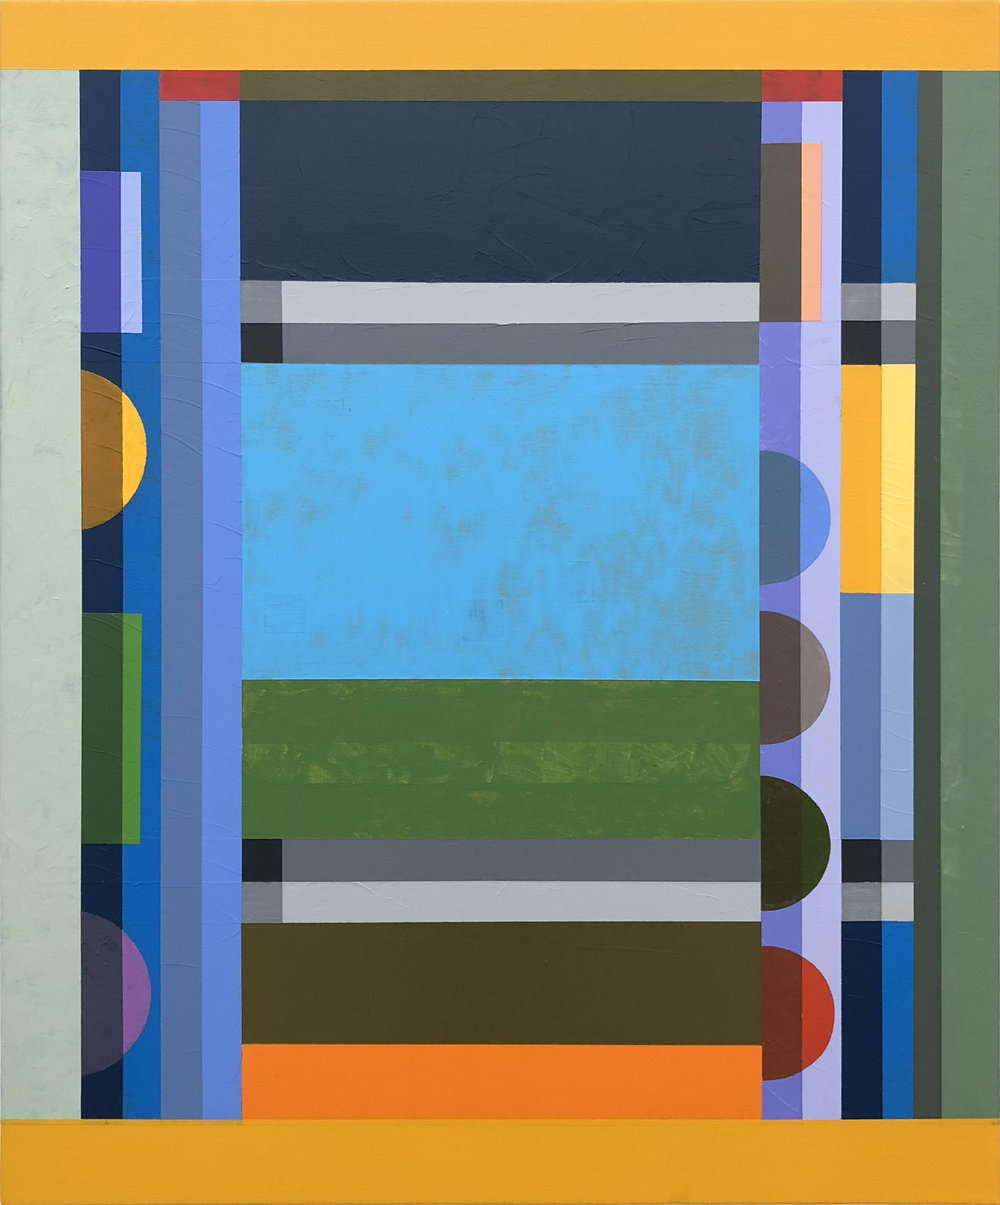 Tony Larson  Screen , 2018 flashe, acrylic, traffic marker paint on canvas 30h x 25w in